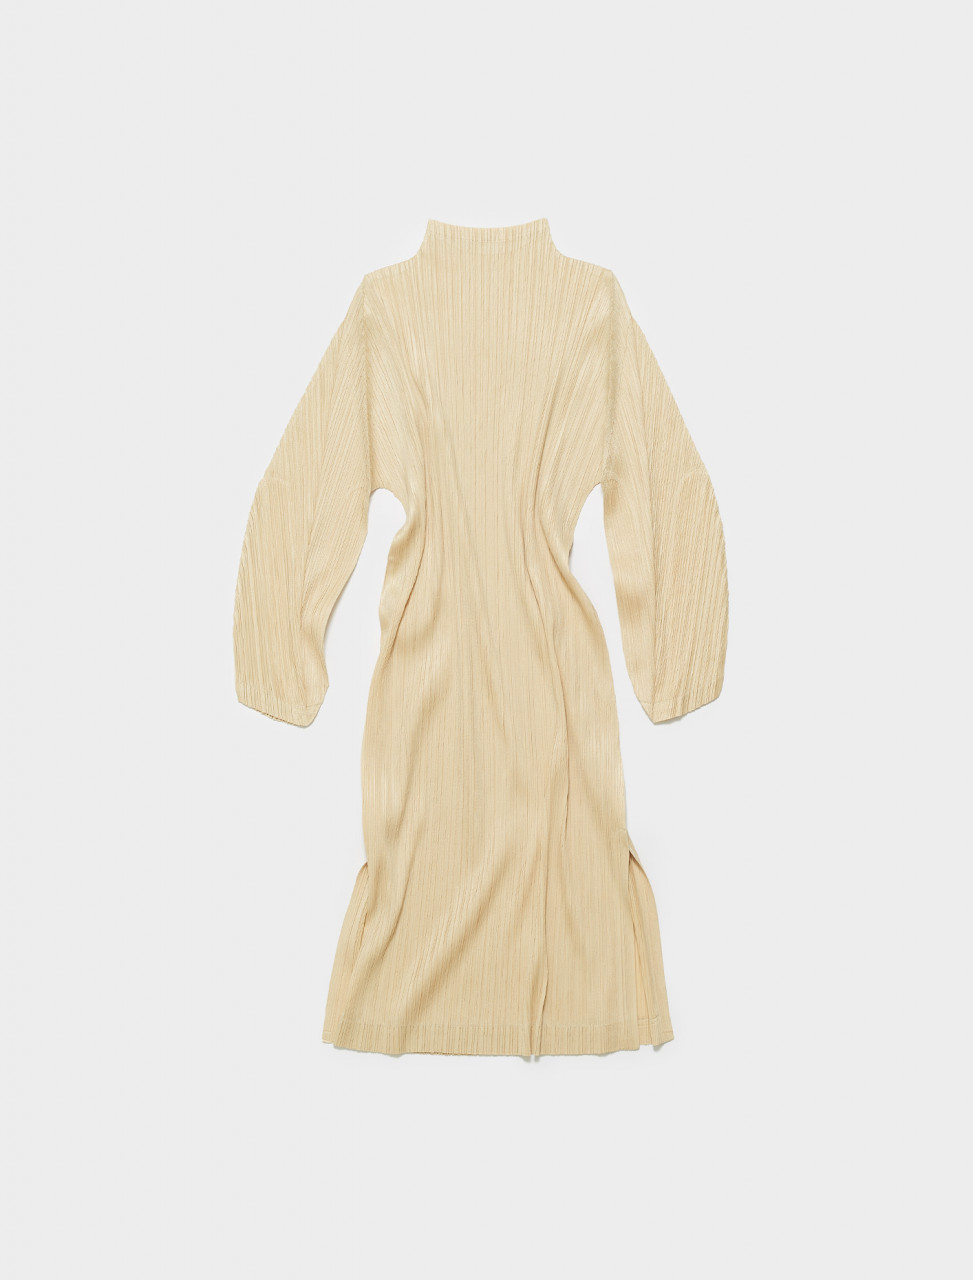 PP16JT163-41 PLEATS PLEASE ISSEY MIYAKE DRESS IVORY